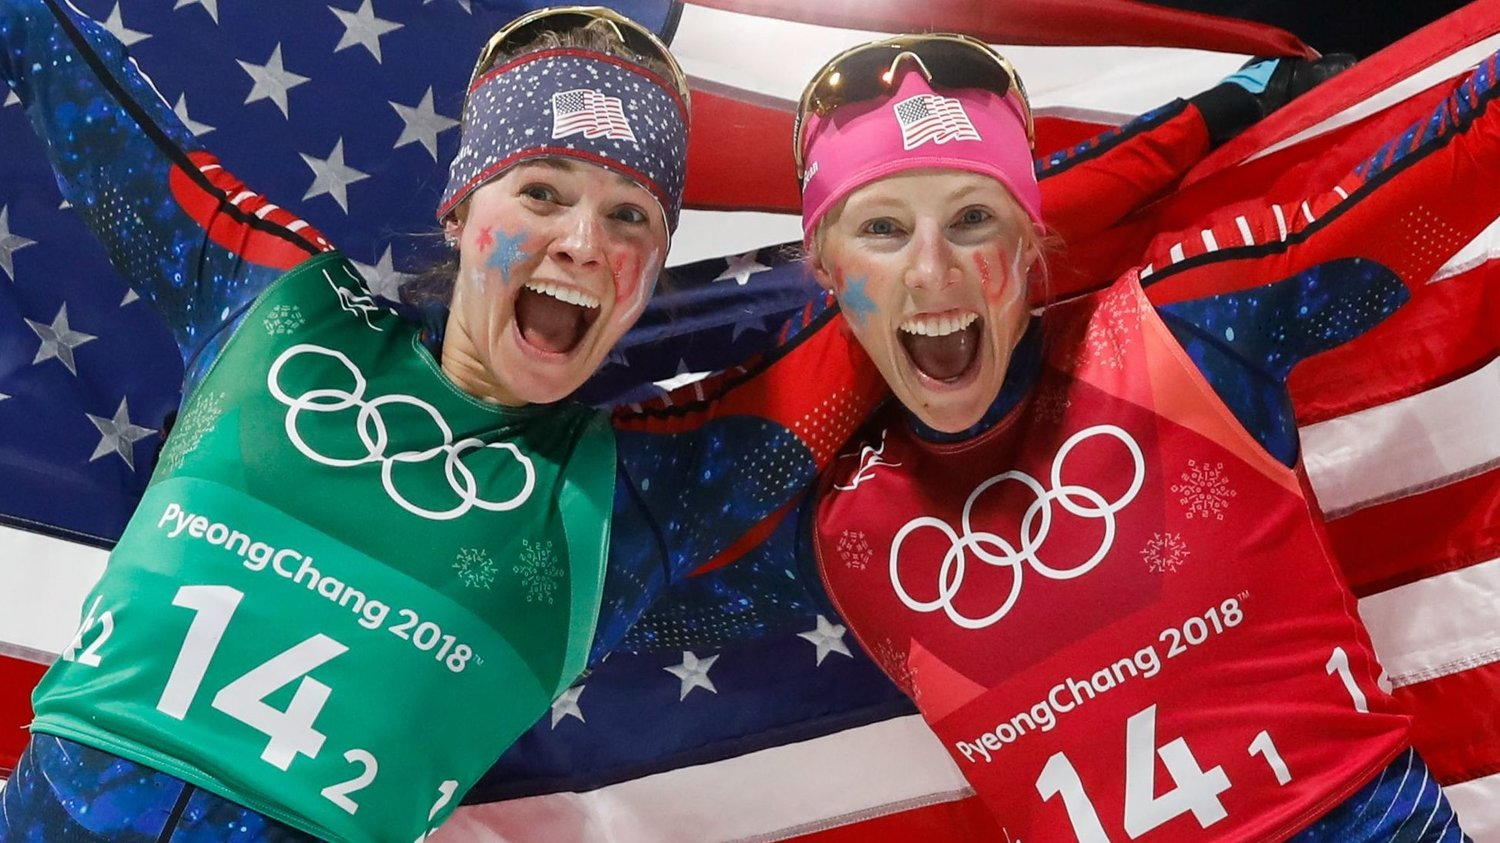 Jessica Diggins and Kikkan Randall celebrate winning their gold medals at the Winter Olympics